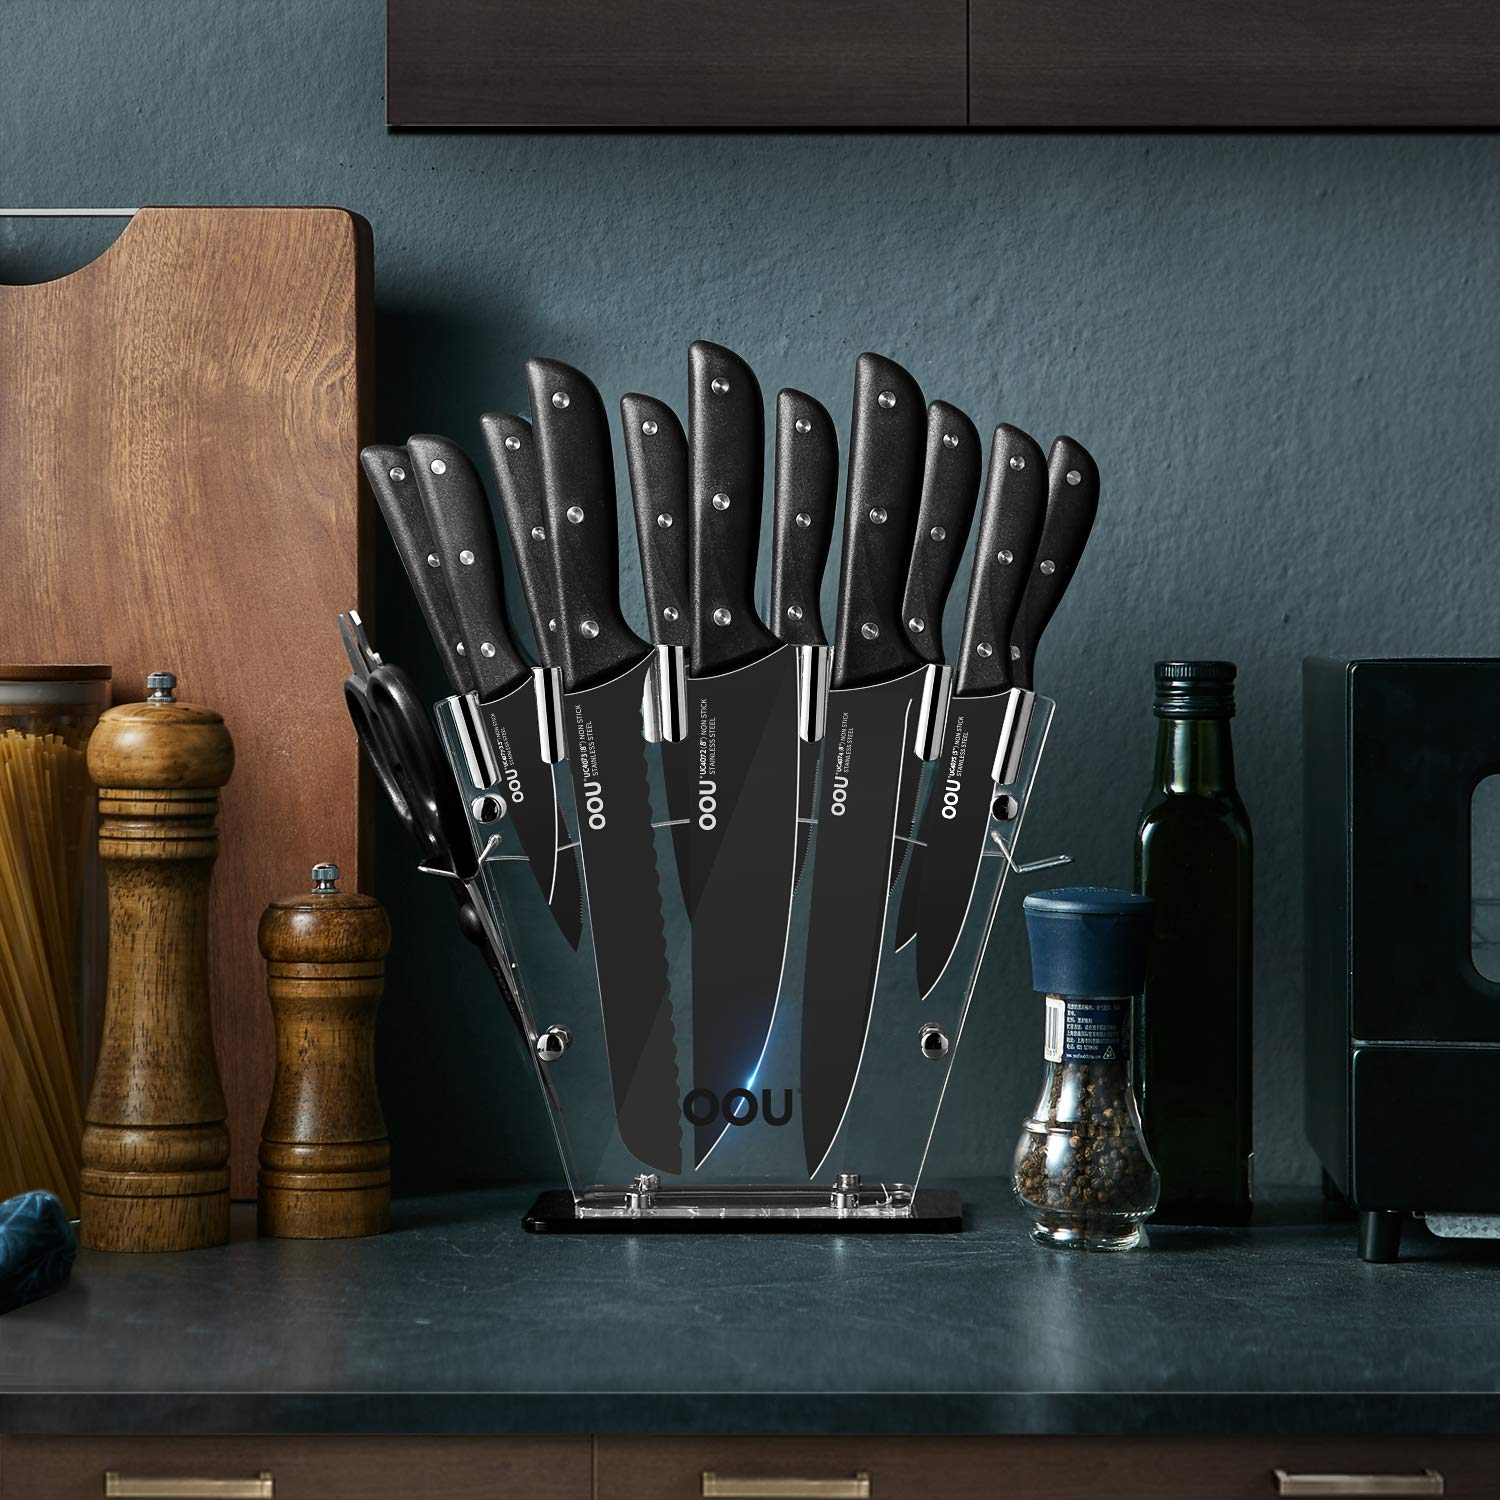 OOU Knife Set, 15 Piece Kitchen Knife Set, High Carbon Stainless Steel Full Tang, FDA Certified BO Oxidation for Anti-rusting, Ultra Sharp Premium Edge Tech, Black Chef Series by OOU! (Image #6)